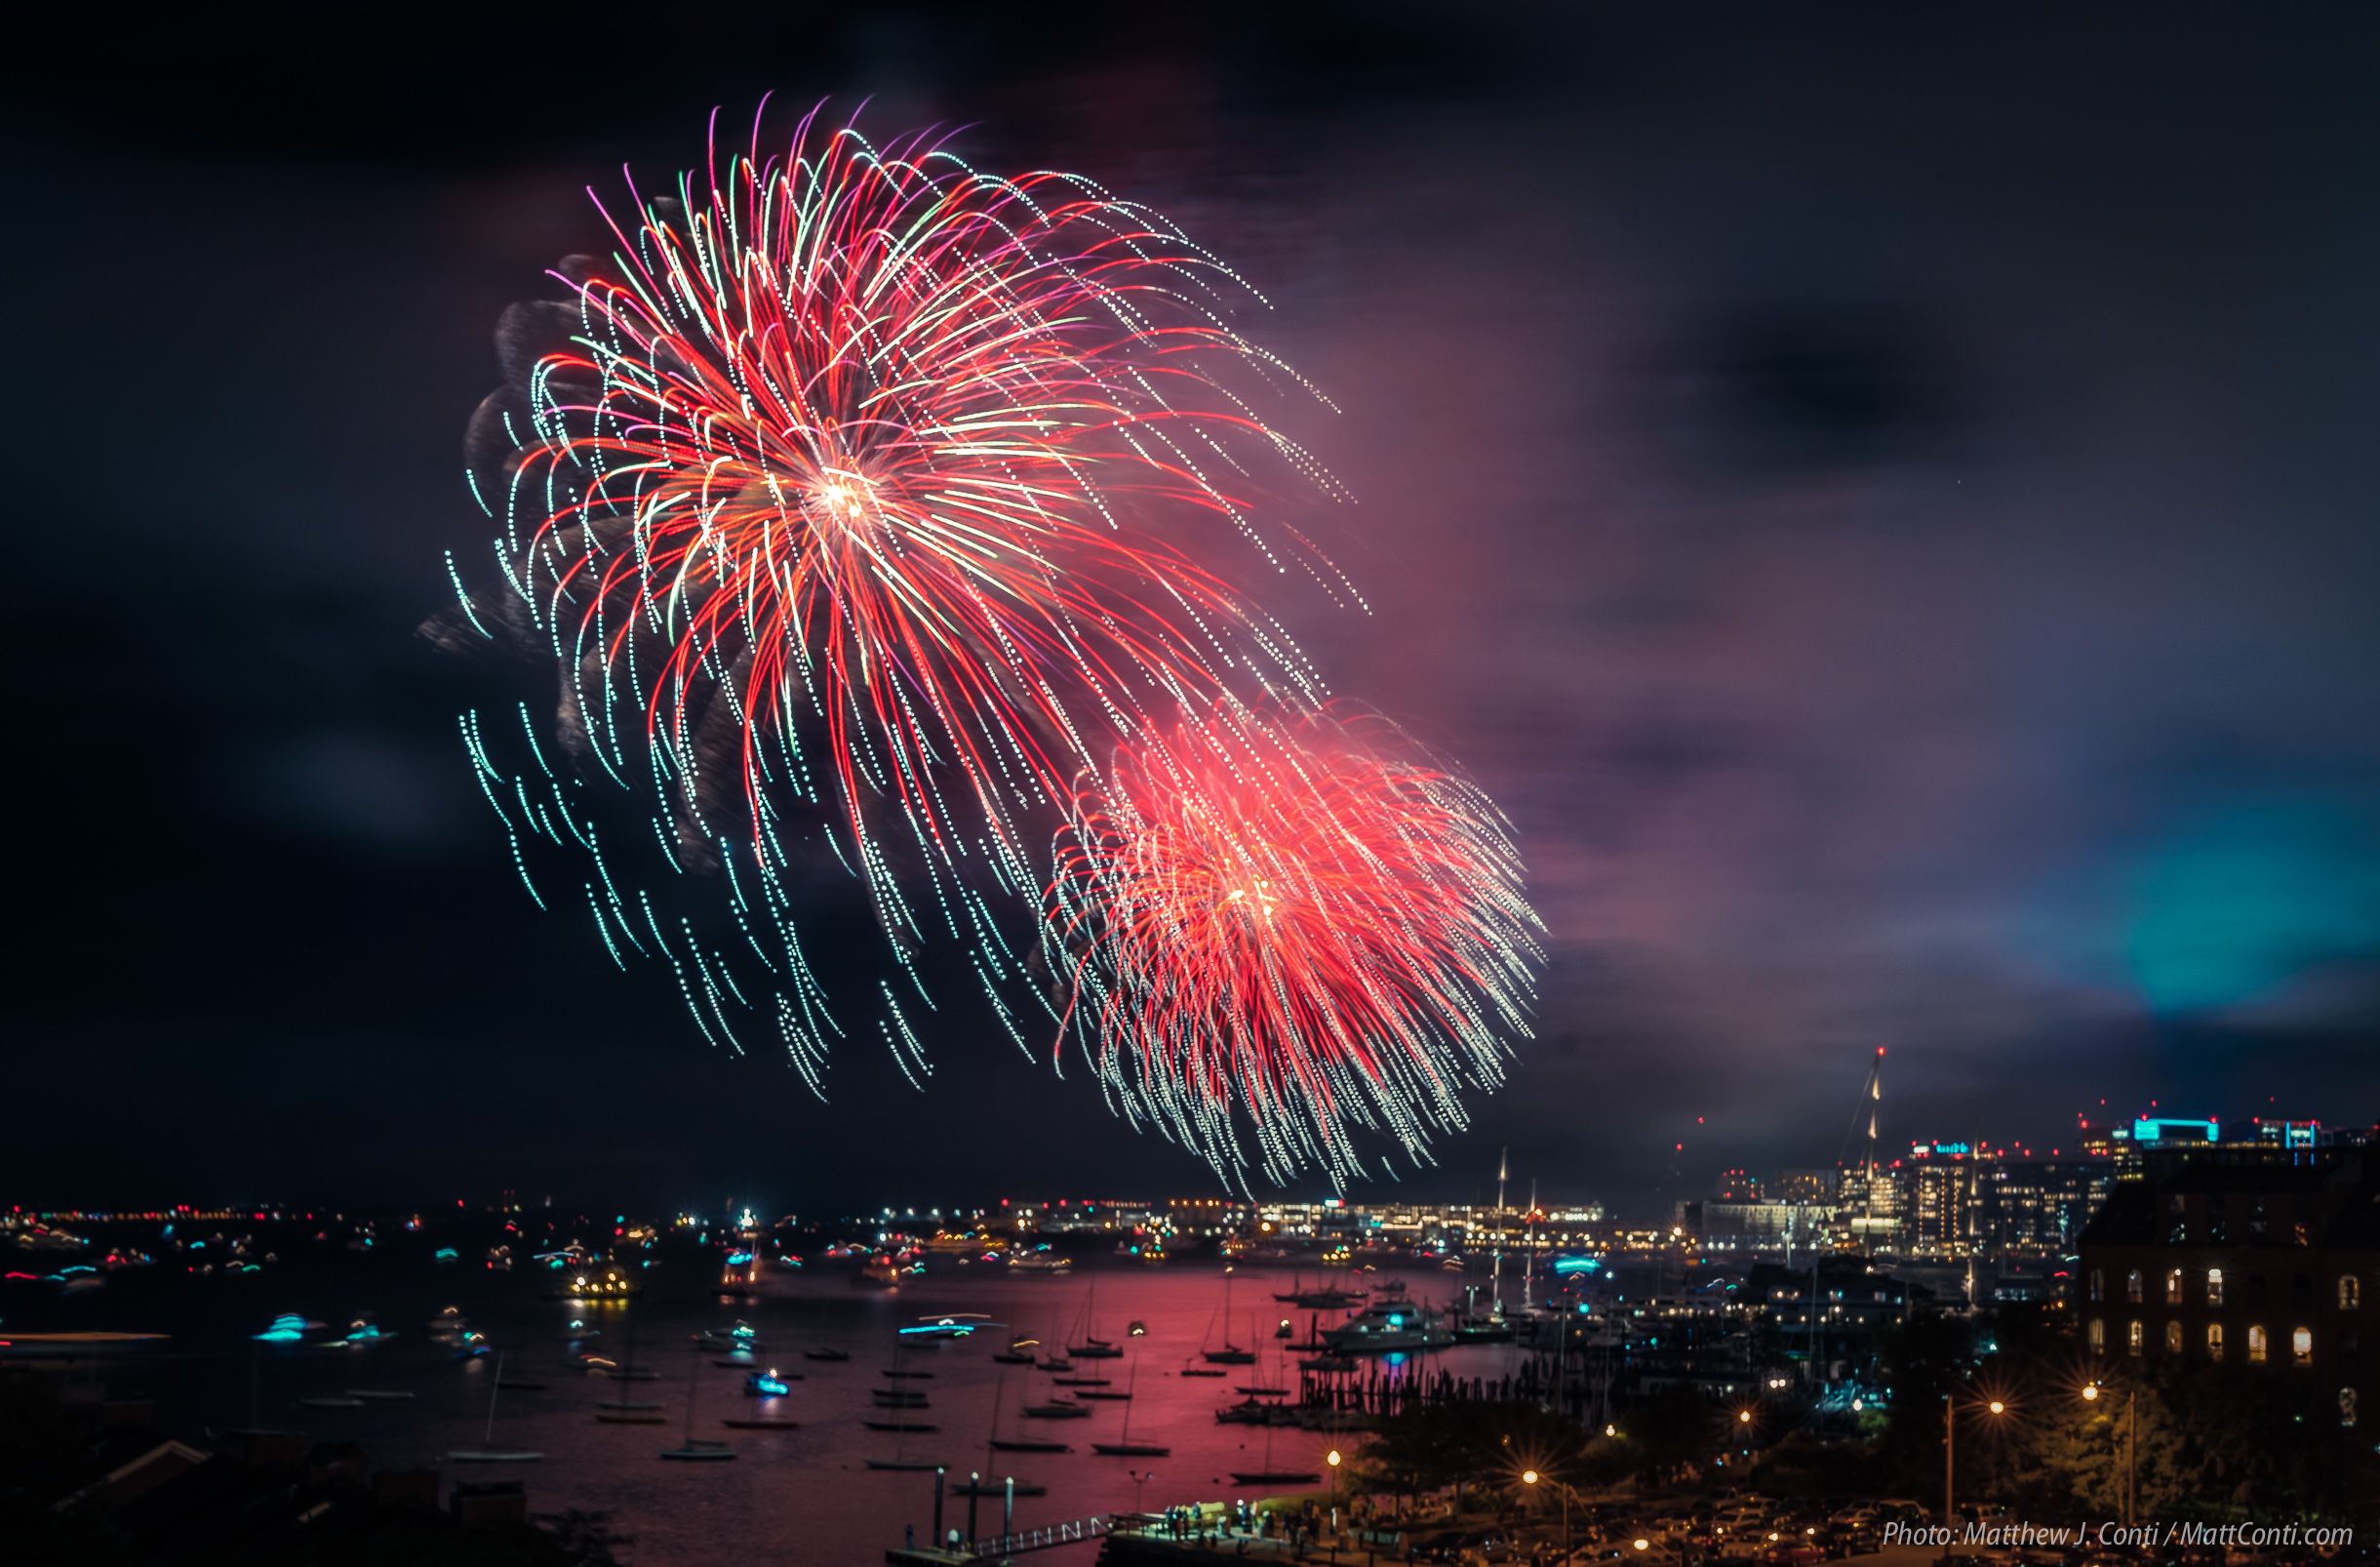 midnight fireworks to ring in 2020 on new years eve with two barges northendwaterfront com northendwaterfront com